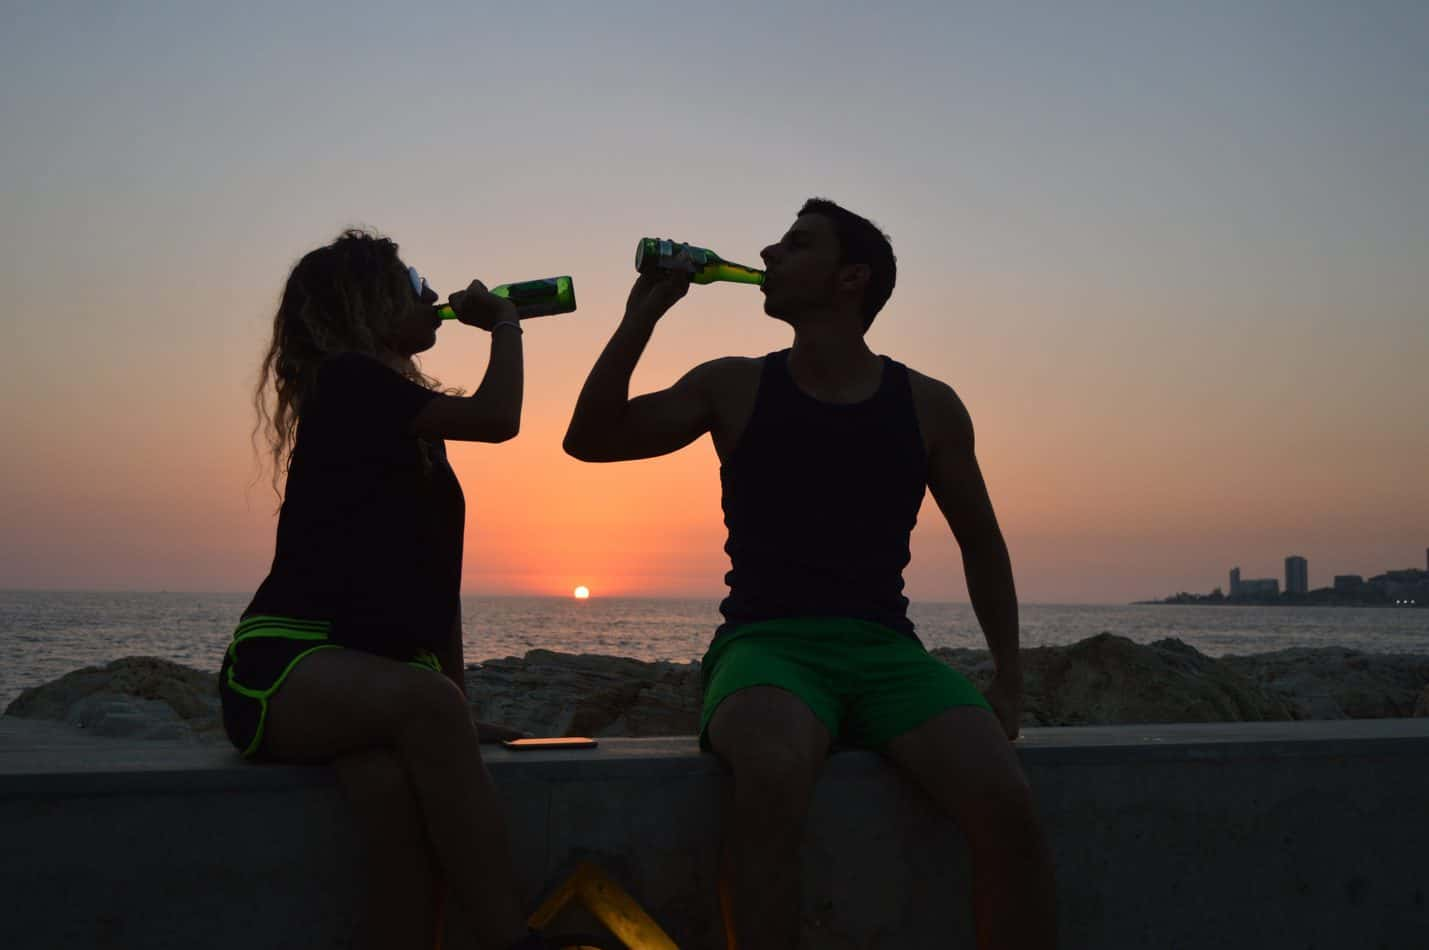 Two people drinking from bottles in the sunset.